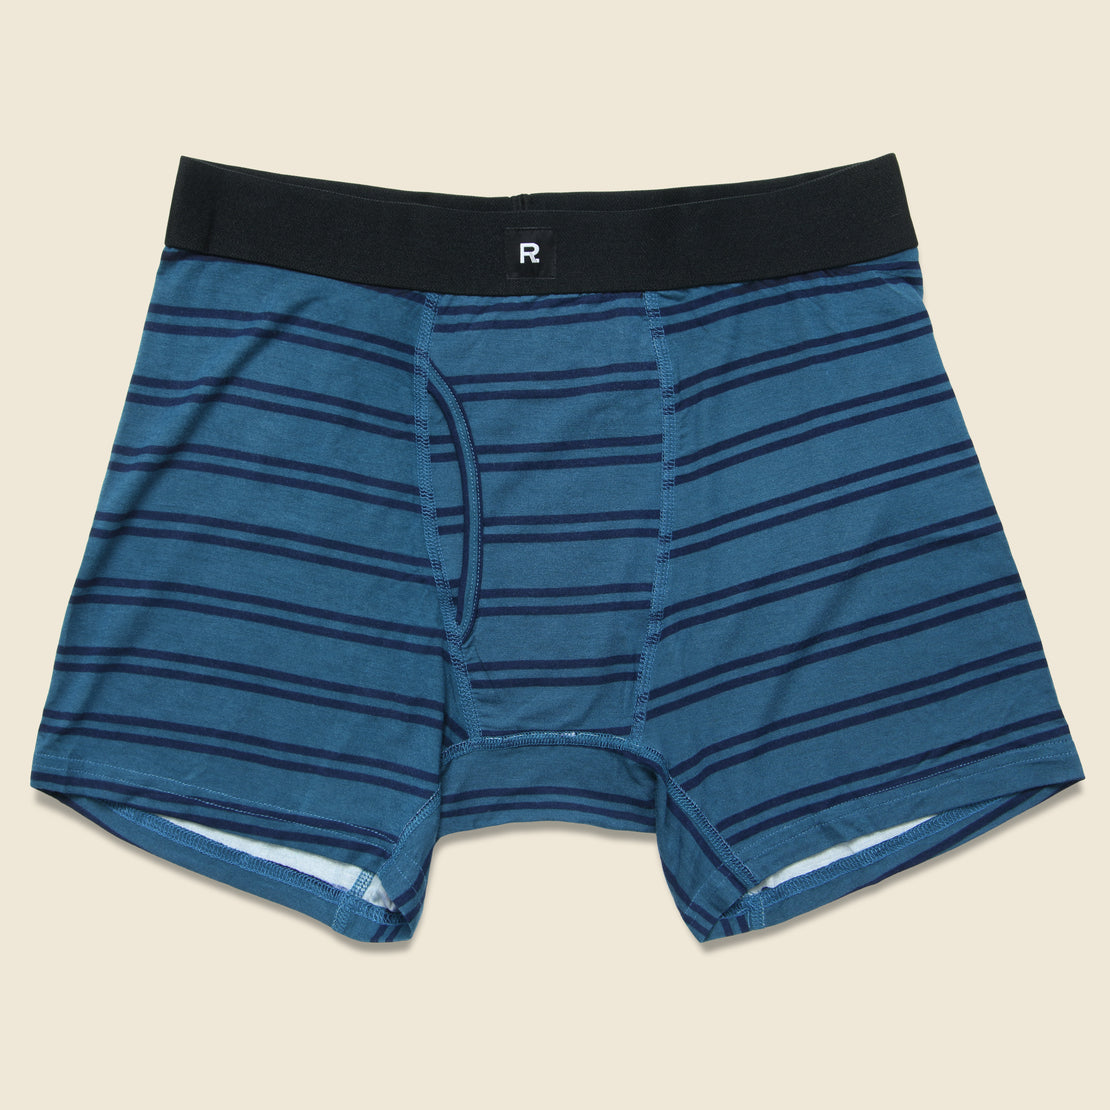 Richer Poorer Clark Boxer - Teal